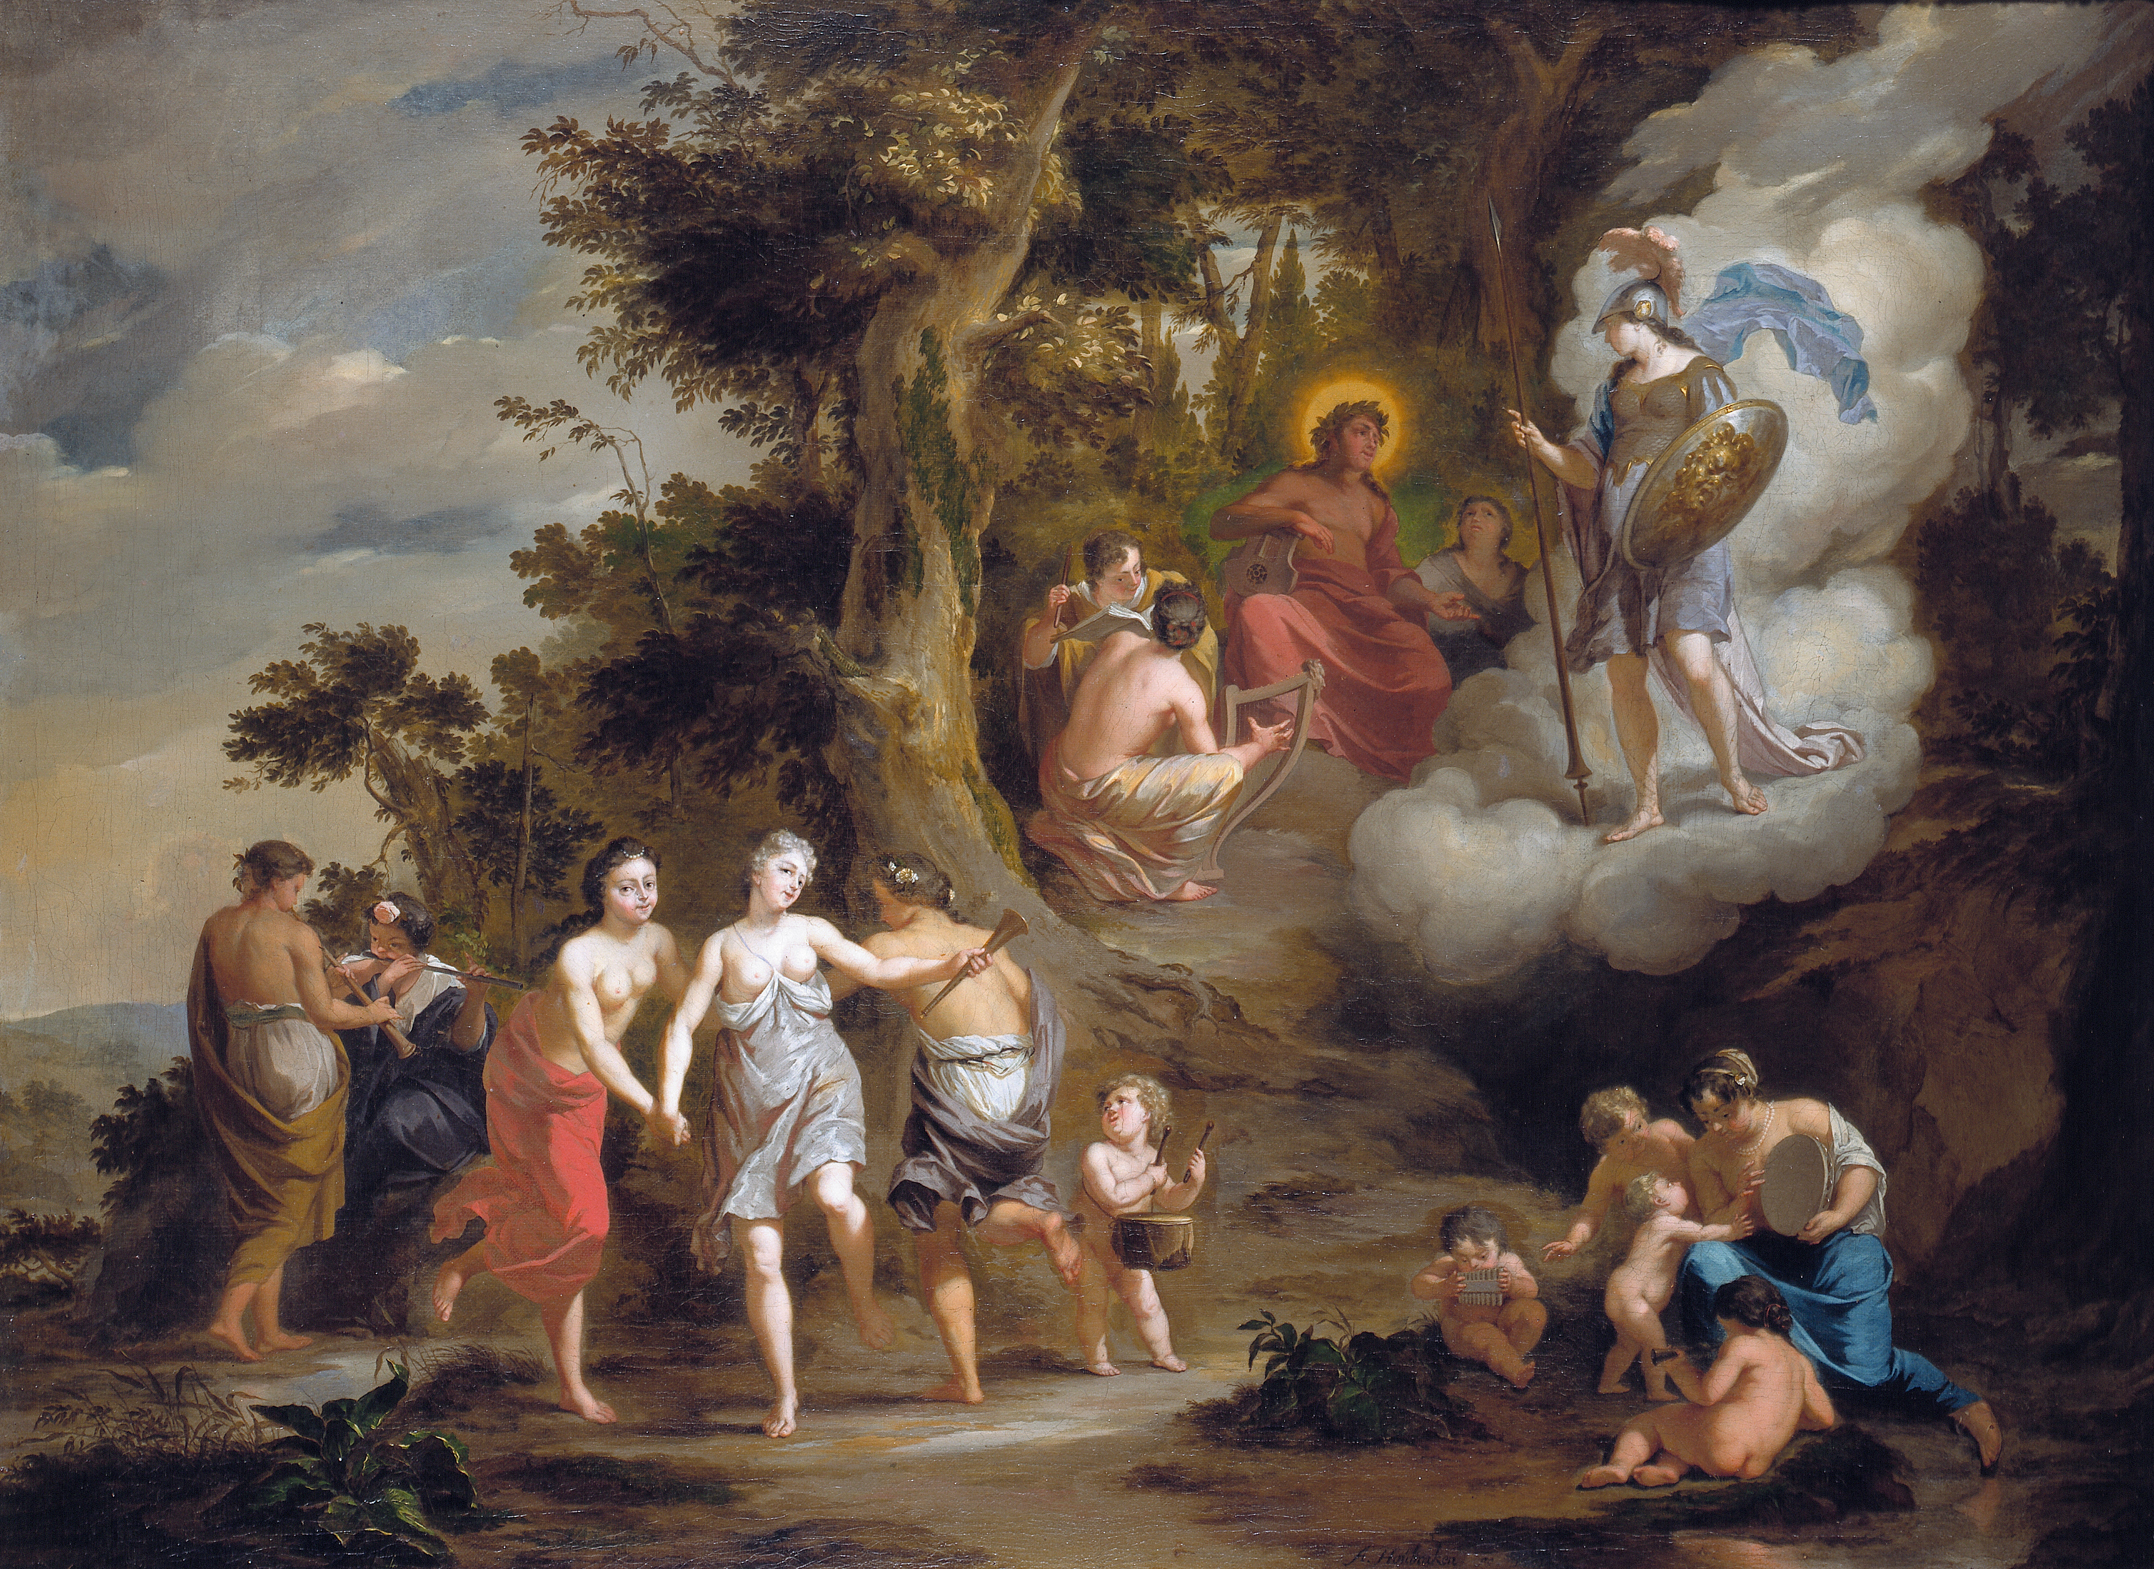 File:Houbraken, Arnold - Pallas Athene Visiting Apollo on the Parnassus -  1703.